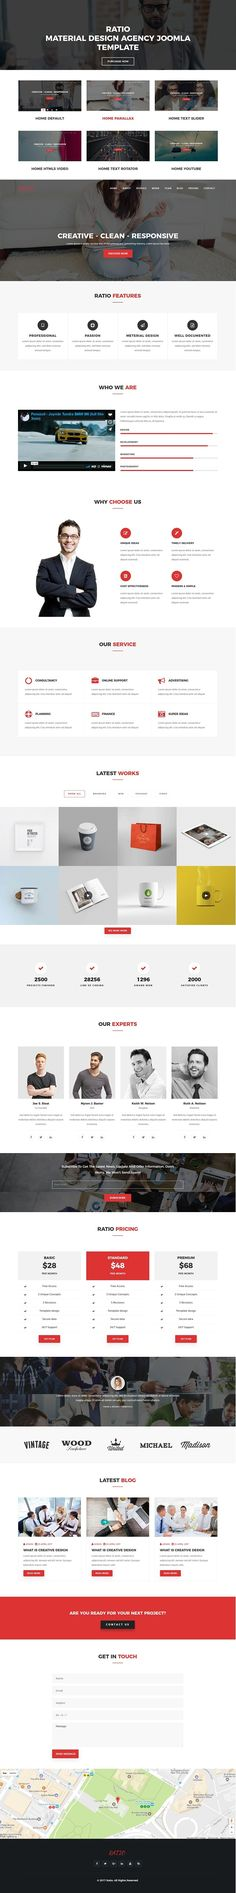 Ratio - Material Design Agency Responsive Joomla Theme  Buy now: https://themeforest.net/item/ratio-material-design-agency-responsive-joomla-theme/19865600